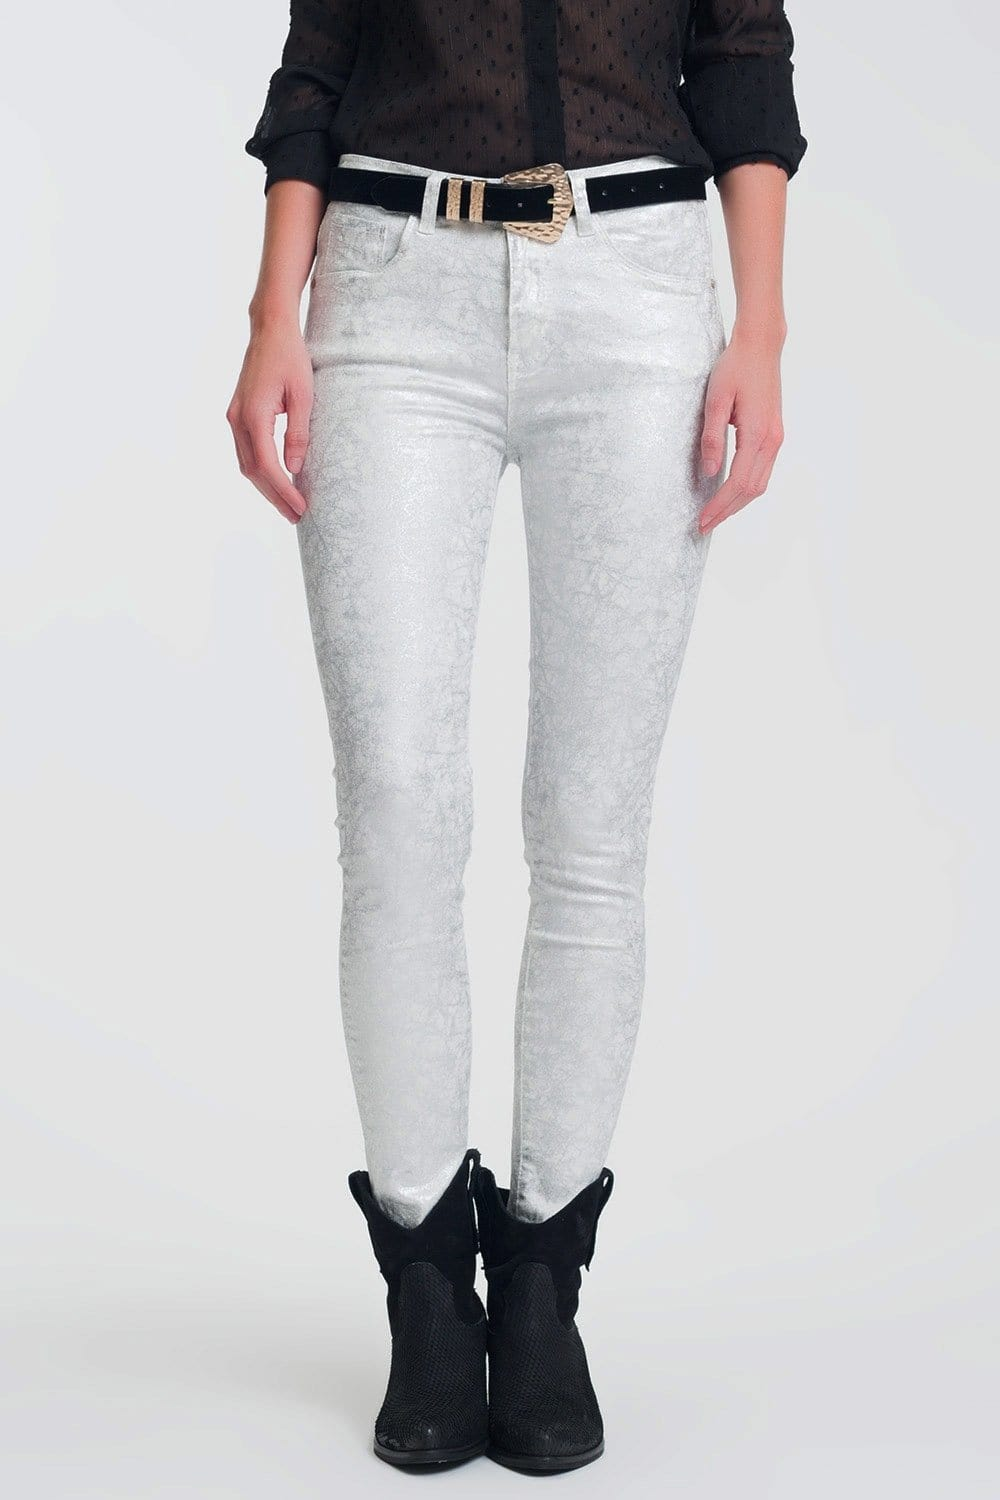 Q2 super skinny white jeans with silver print